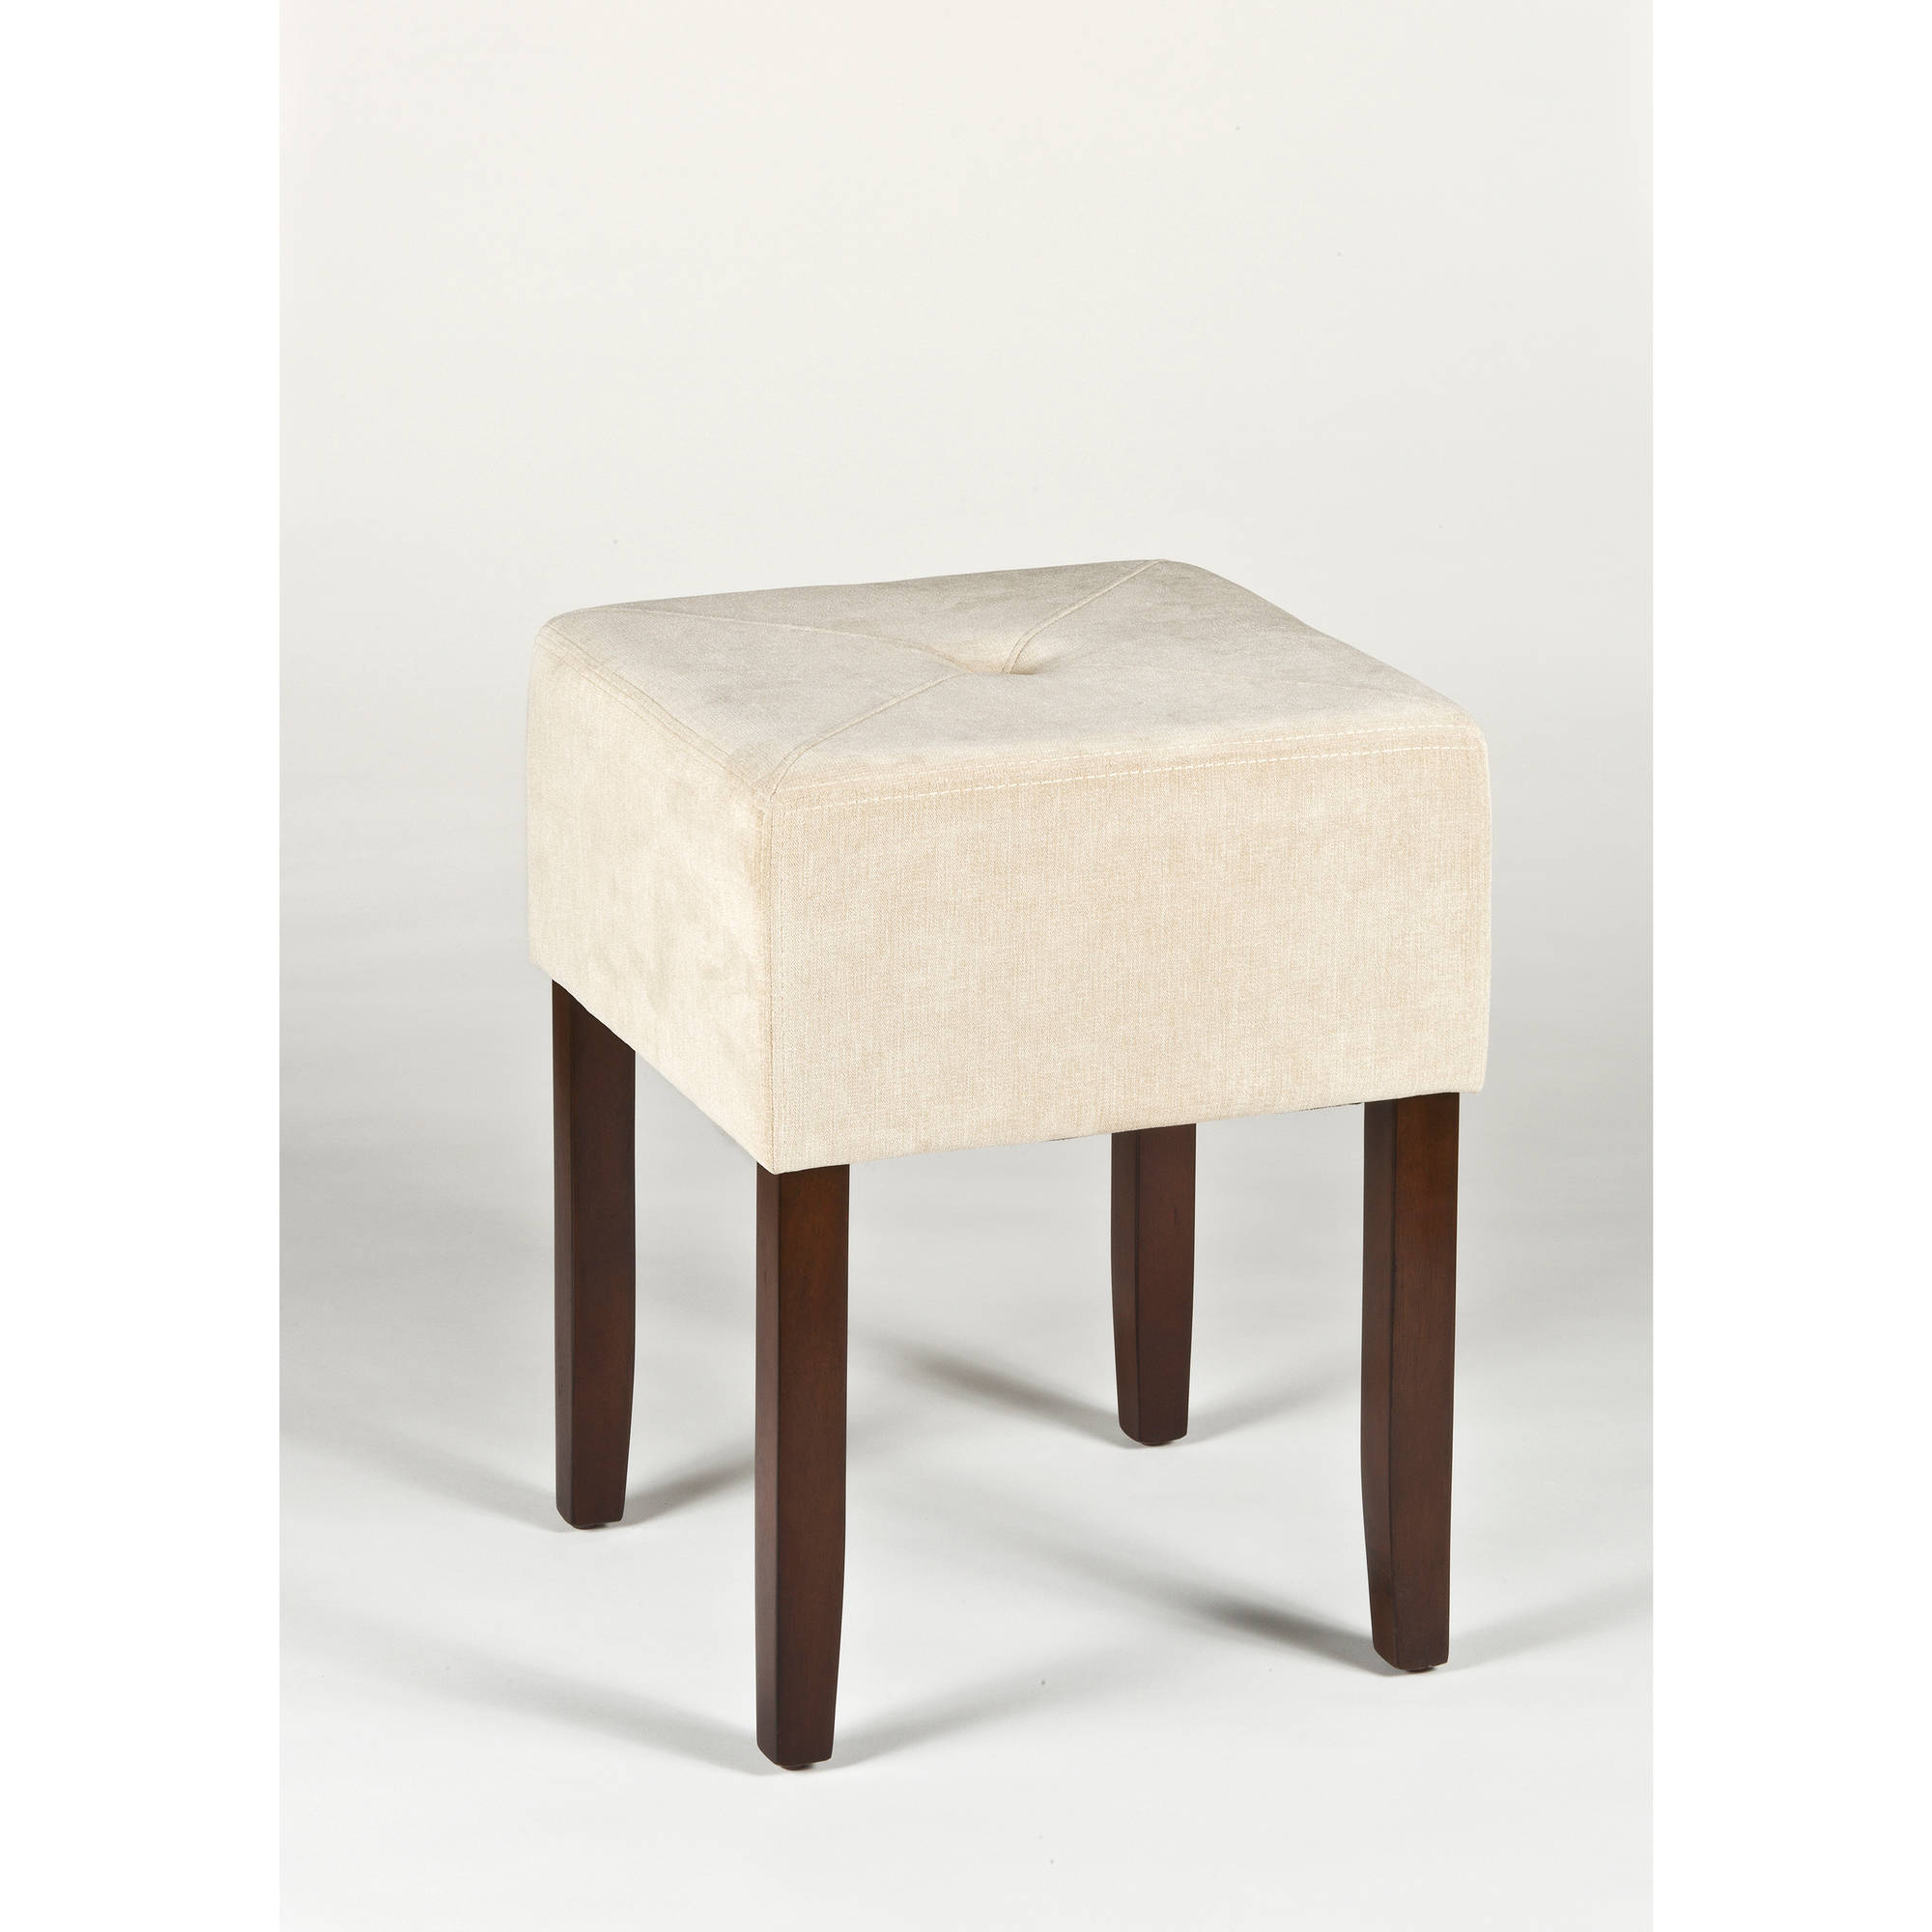 Bellamy Backless Vanity Stool - Walmart.com